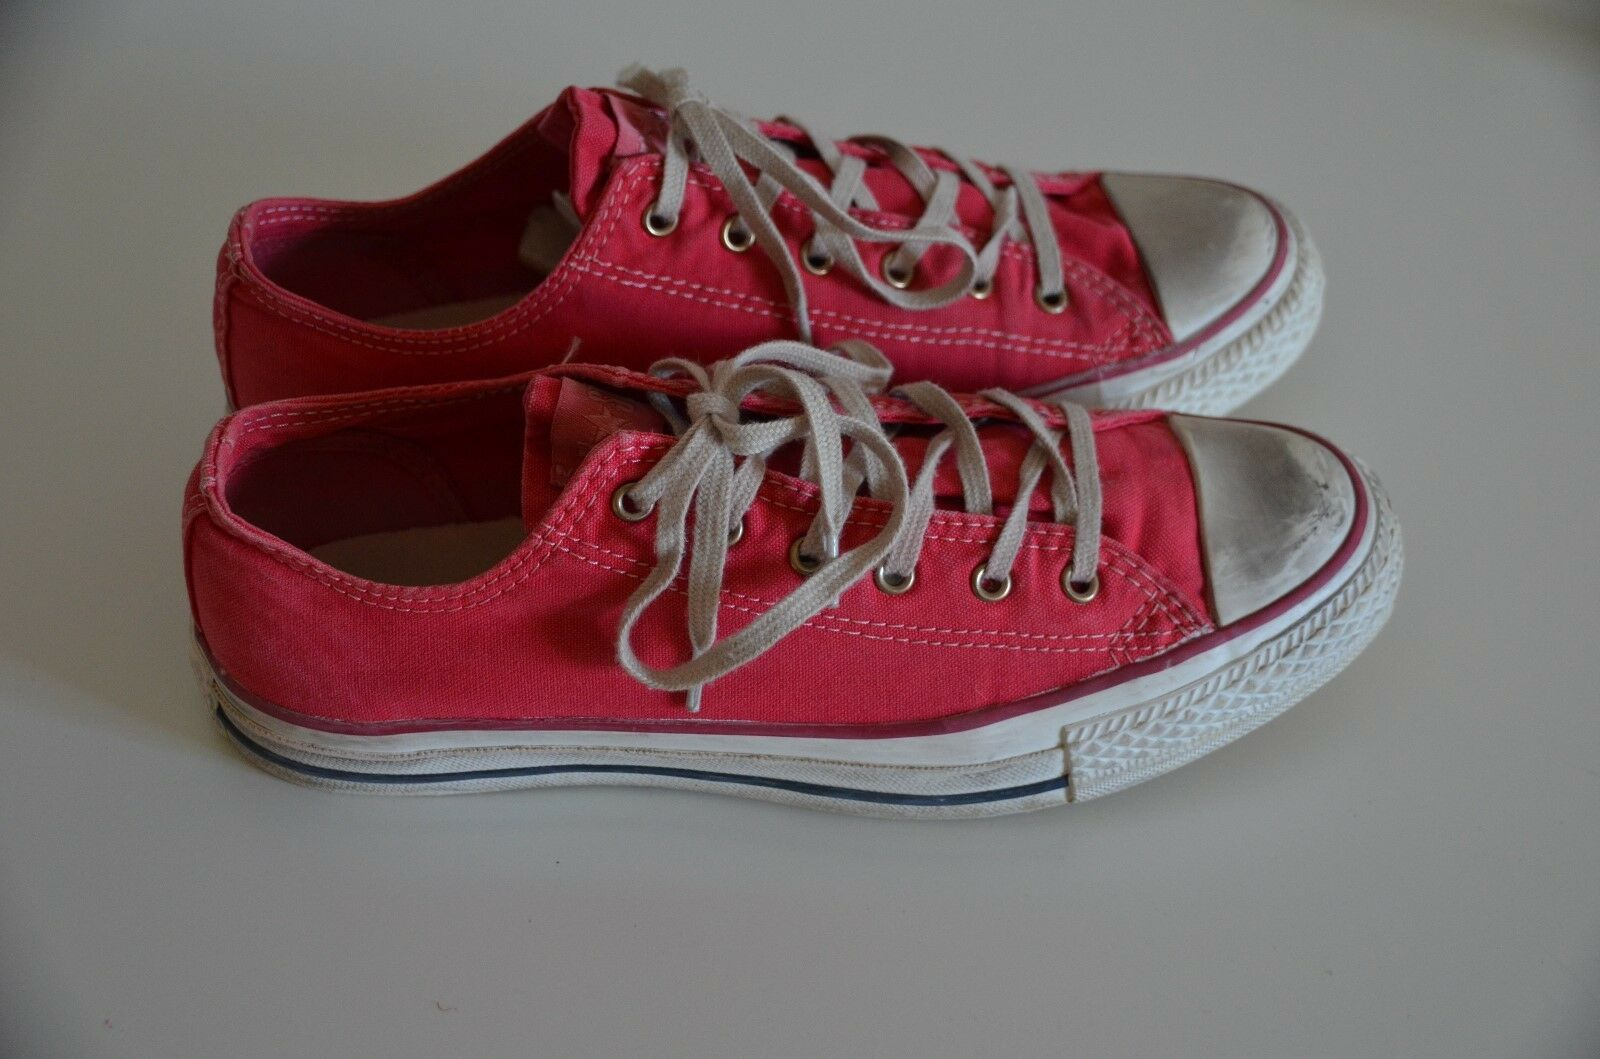 Converse All All All Star Schuh Limited Edition Ungetragen Gr.6 1 2  | New Listing  47c4b9